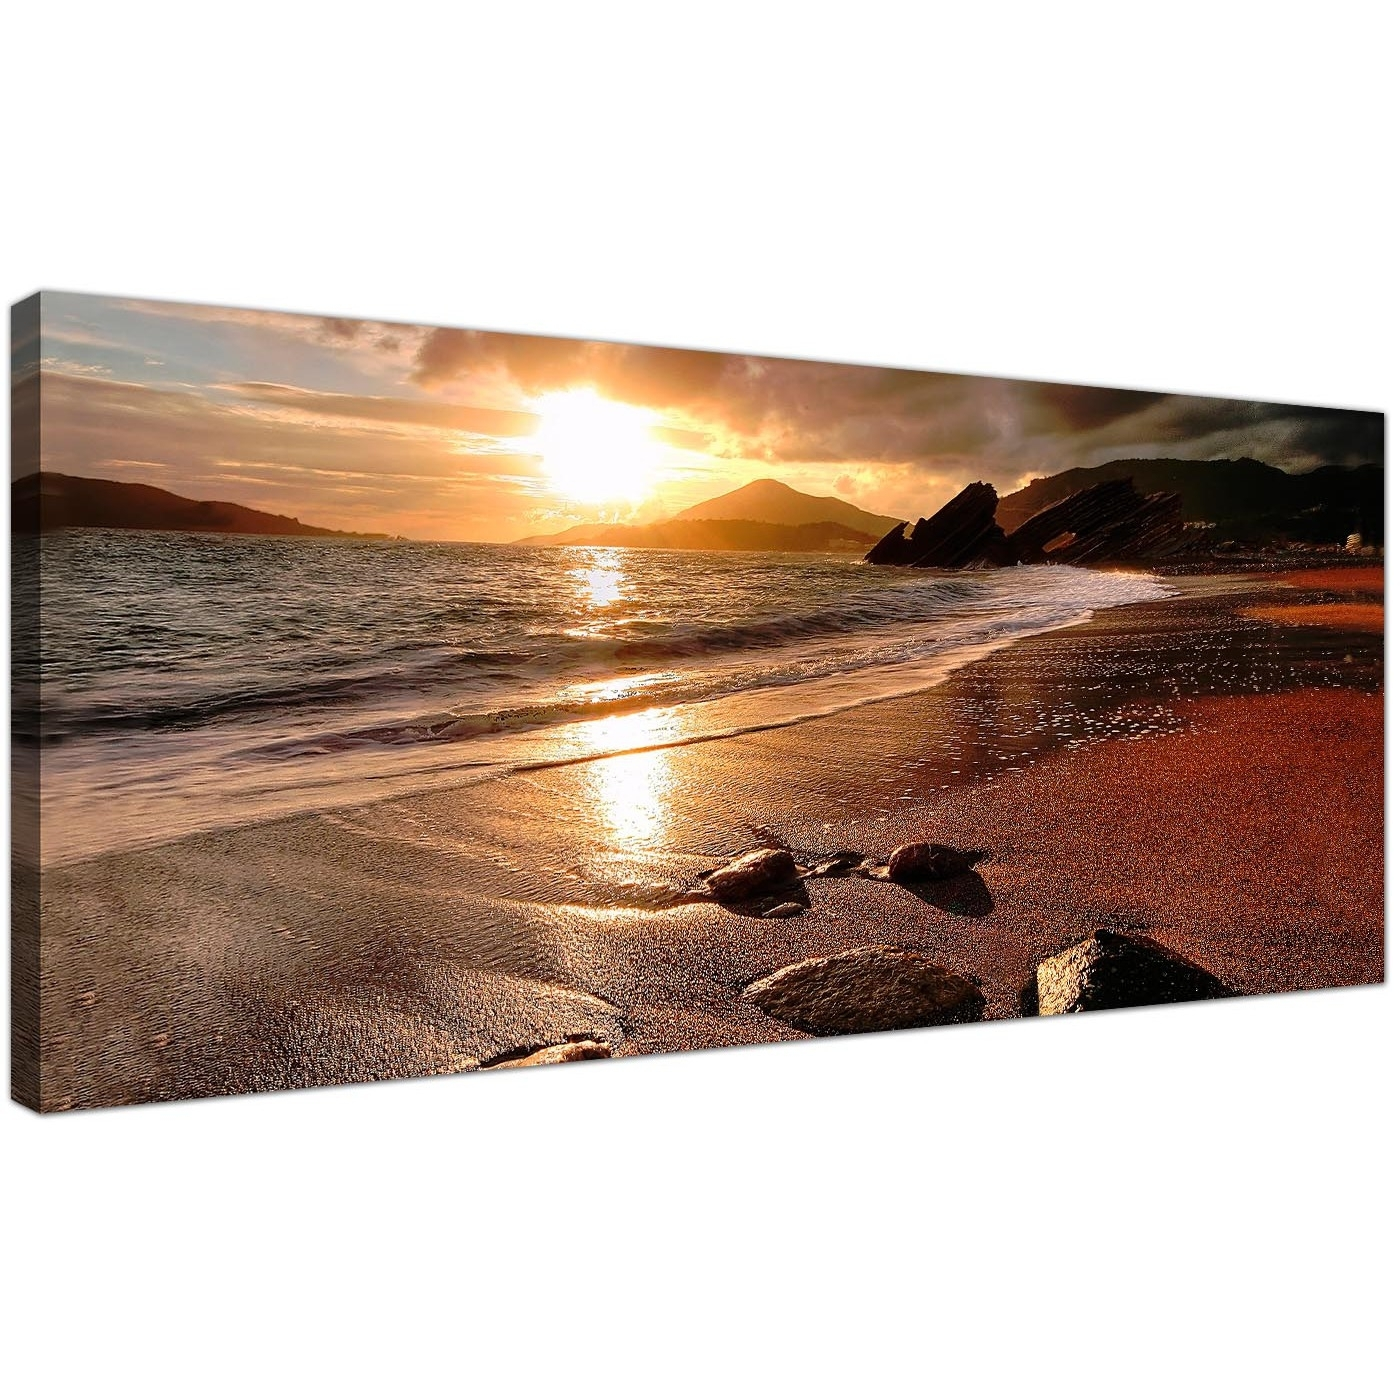 Wide Canvas Prints Of A Beach Sunset For Your Living Room With Regard To Most Recently Released Canvas Wall Art Beach Scenes (View 13 of 15)